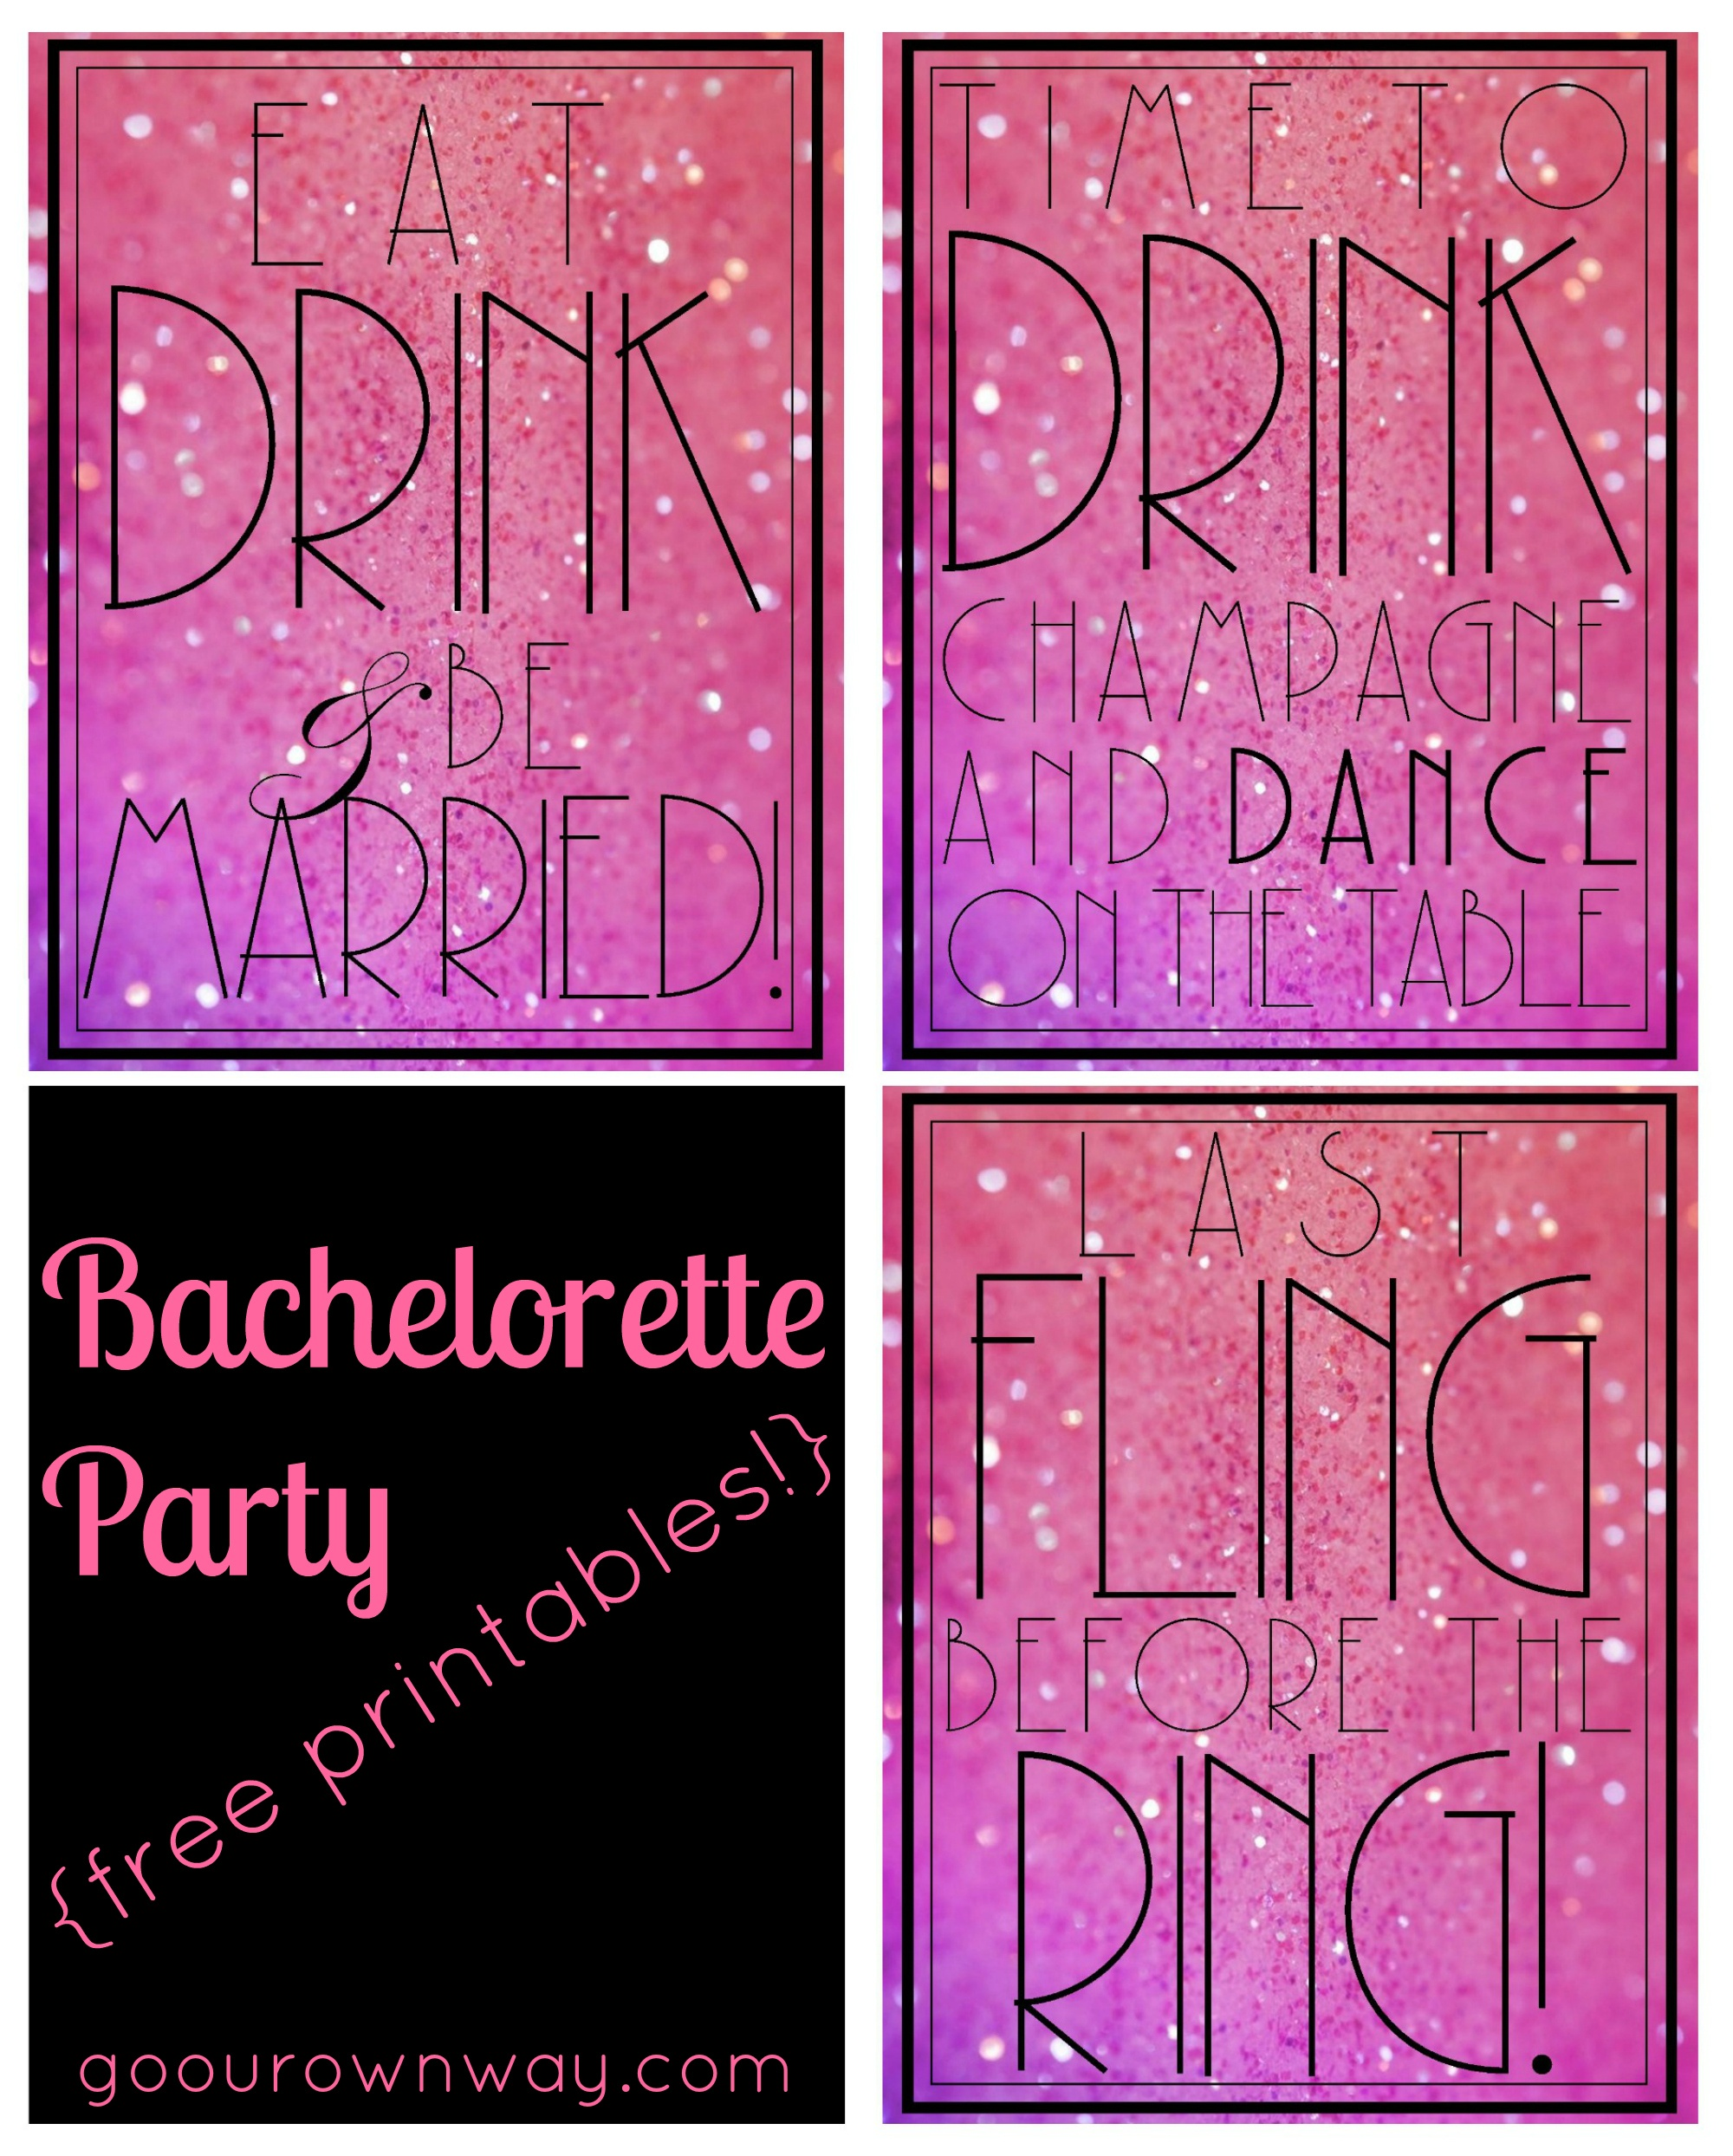 Bachelorette {Free Printables} | Go Our Own Way - Free Printable Bachelorette Signs